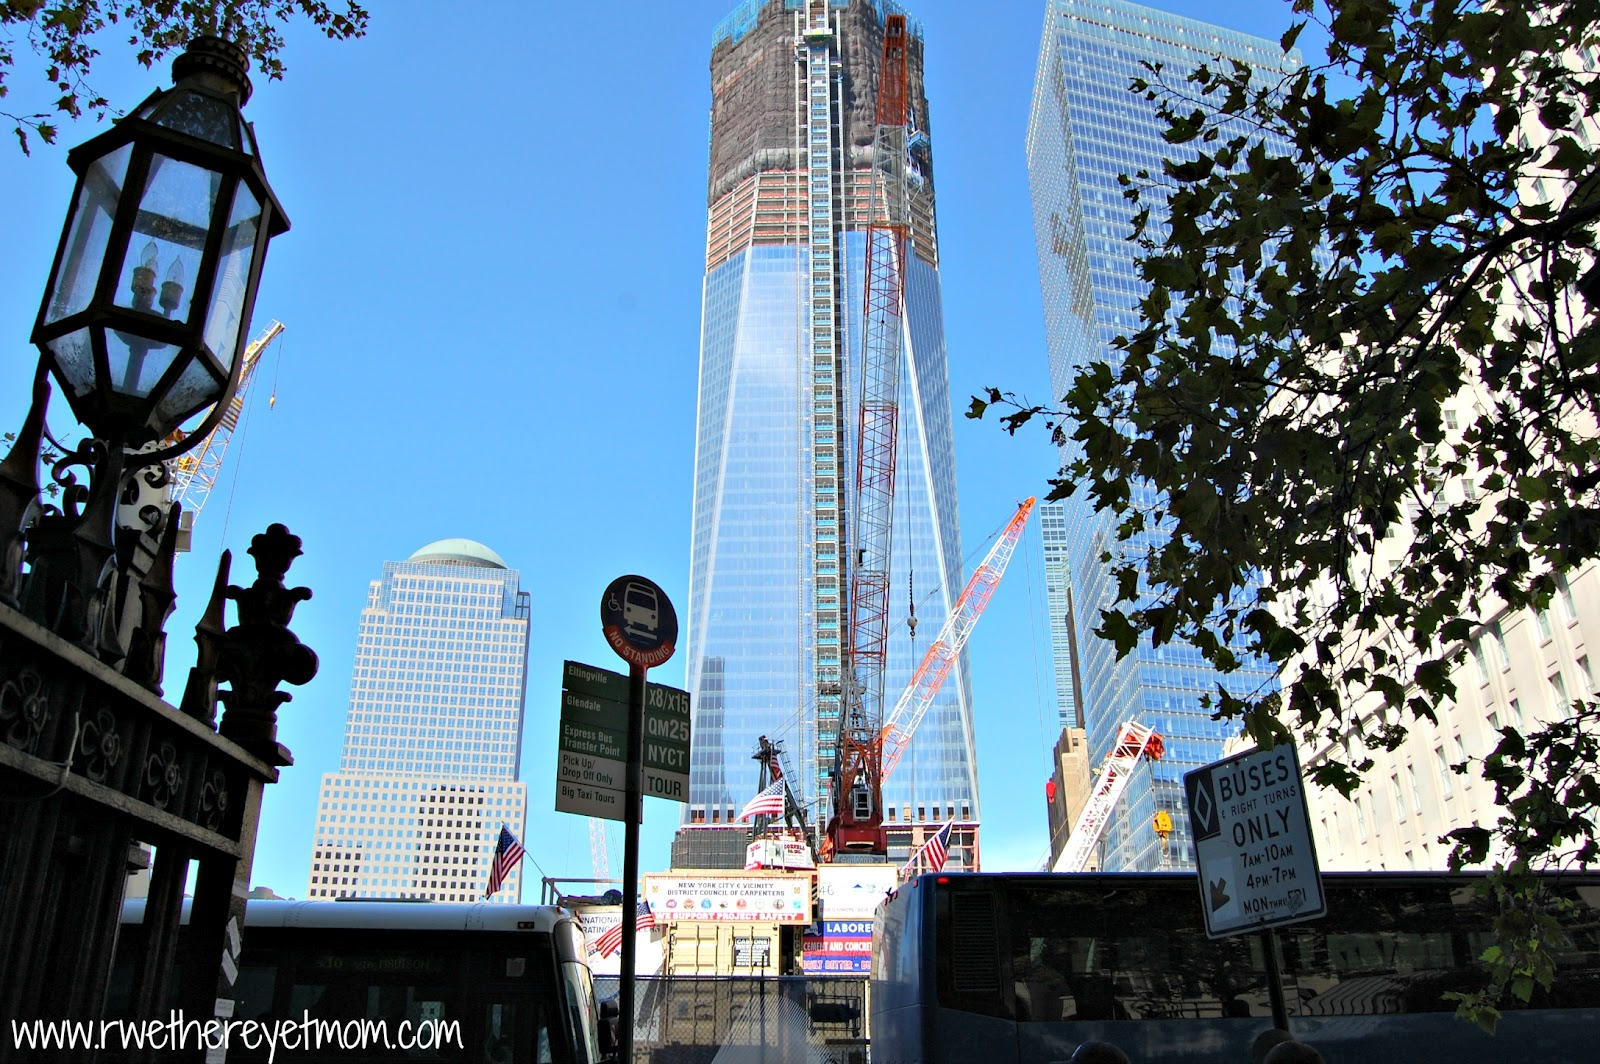 St_ Paul's Chapel At Ground Zero http://www.rwethereyetmom.com/2012/09/st-pauls-chapel-new-york-ny.html